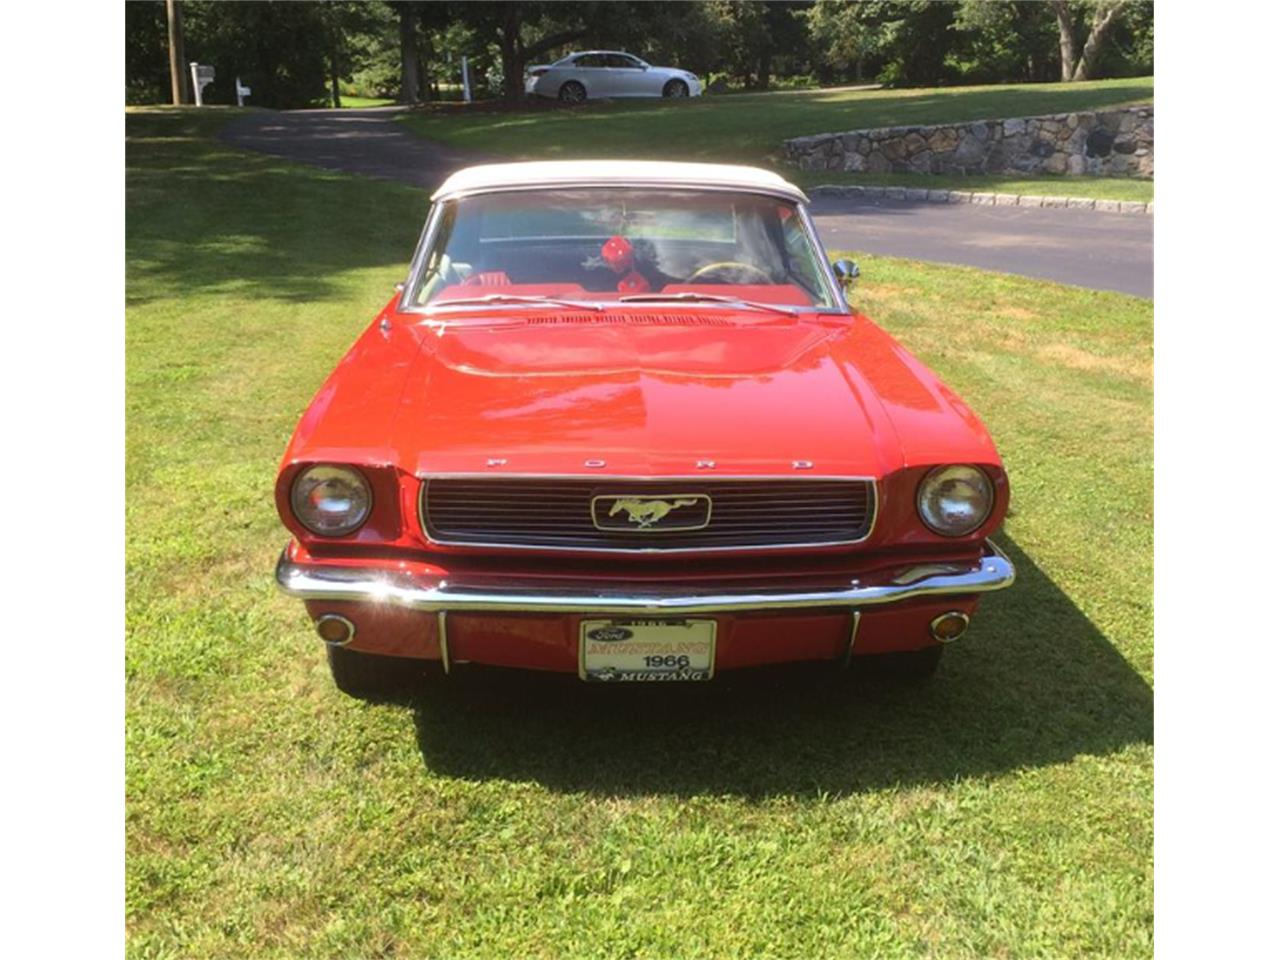 Large Picture of Classic '66 Ford Mustang located in Stamford Connecticut - $22,000.00 - J6KE